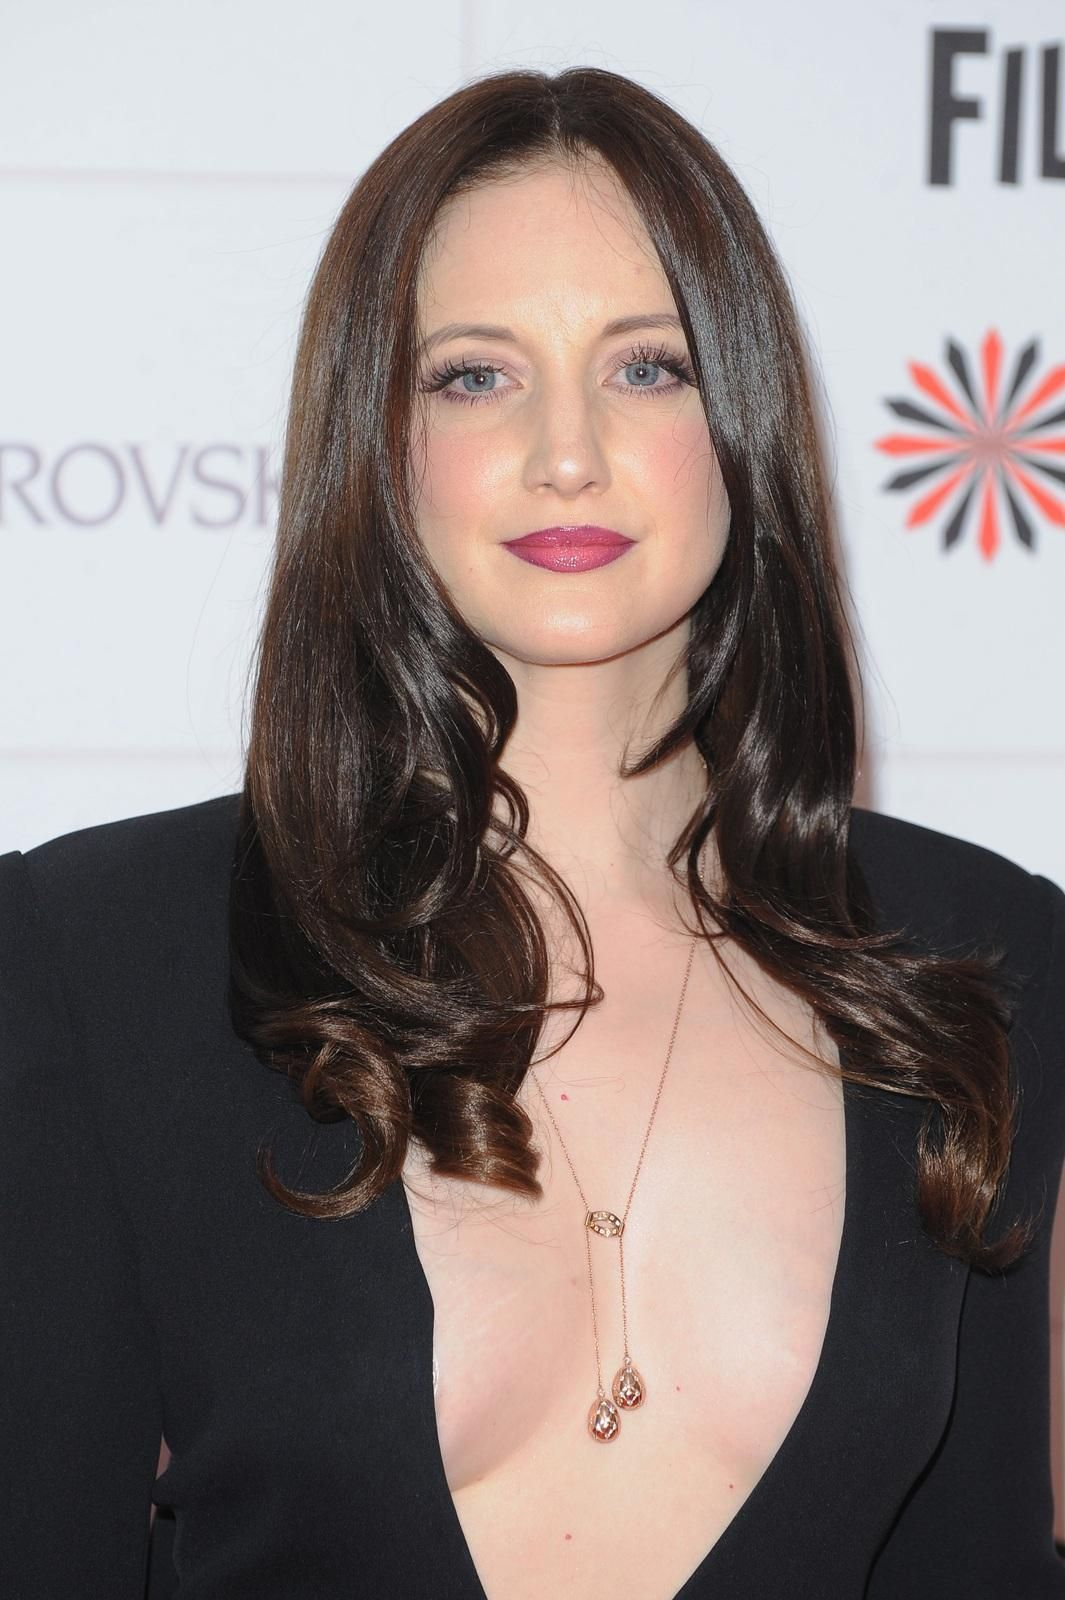 Celebrites Andrea Riseborough nude photos 2019